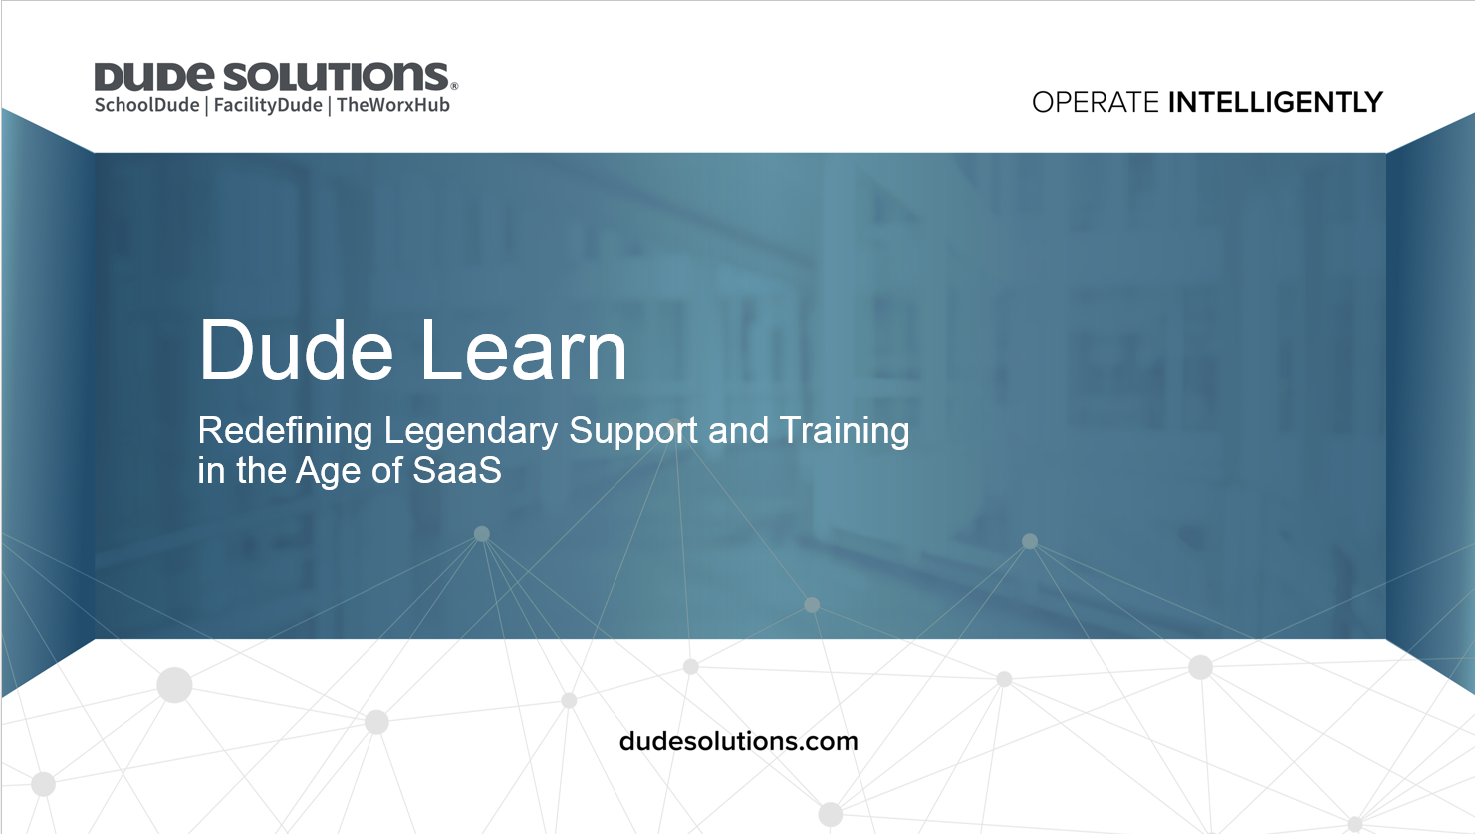 Introducing Dude Learn!